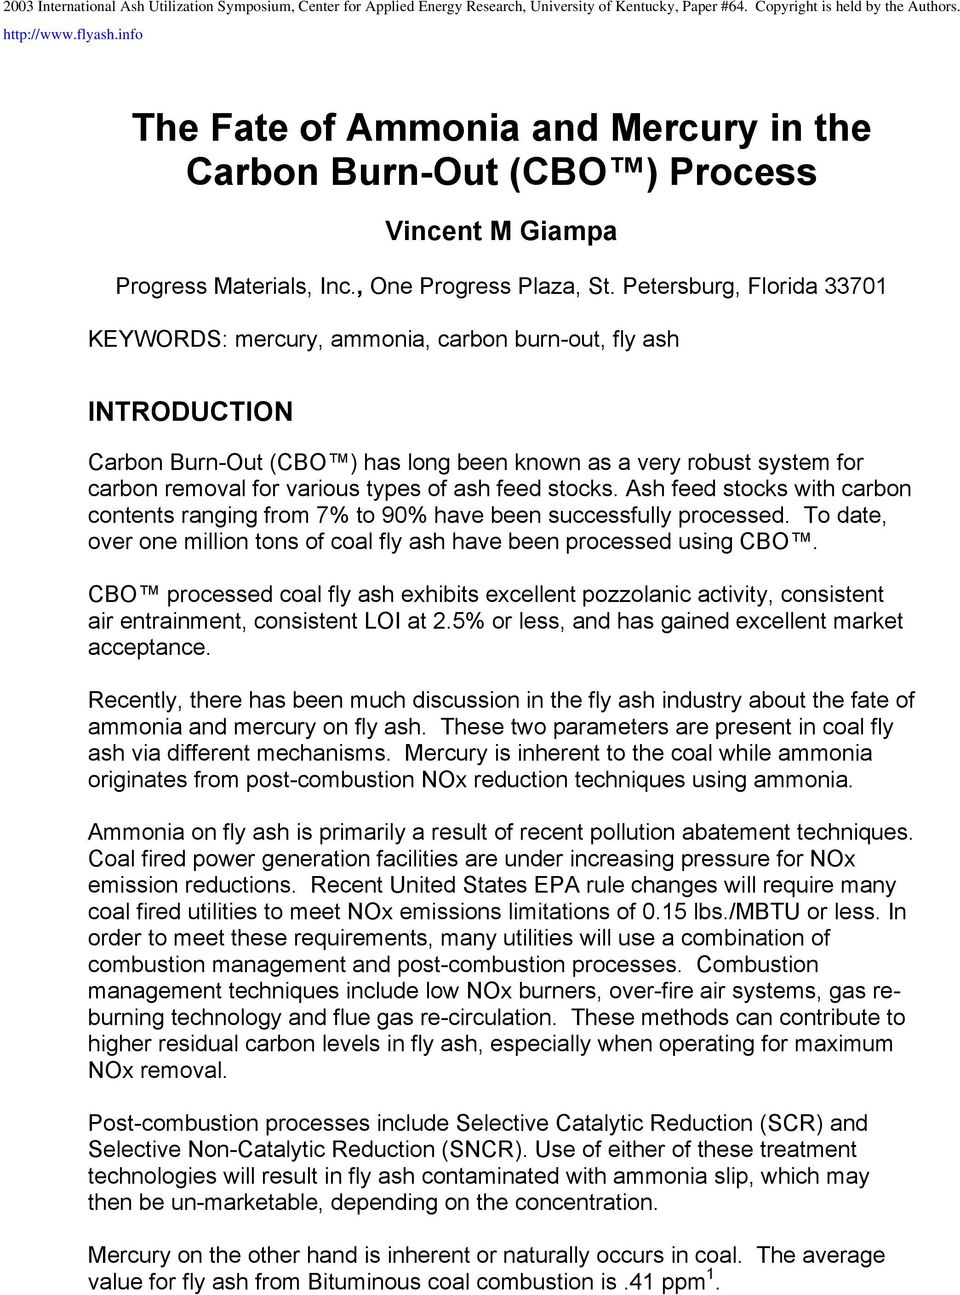 ash feed stocks. Ash feed stocks with carbon contents ranging from 7% to 90% have been successfully processed. To date, over one million tons of coal fly ash have been processed using CBO.